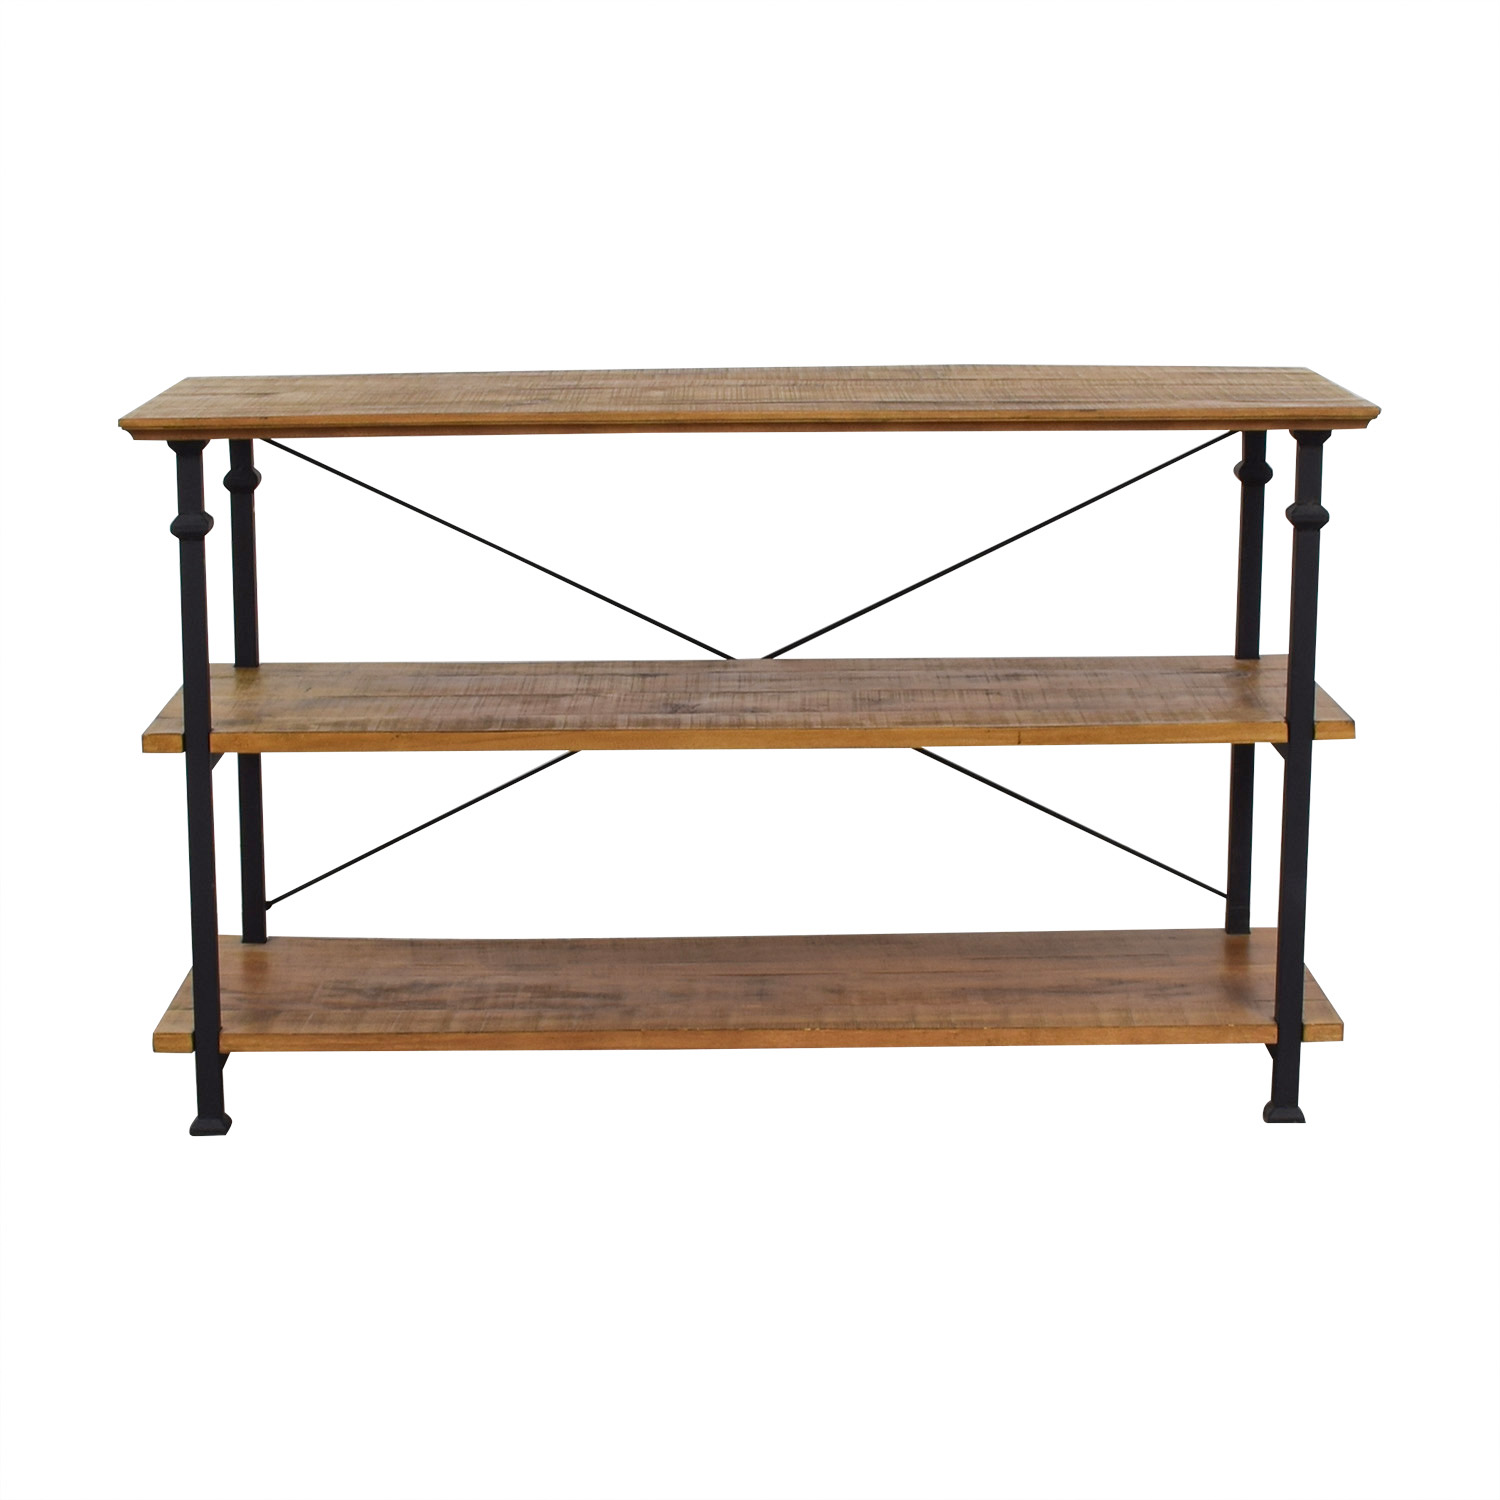 Macy's Macy's Rustic Wood Media Console Table for sale